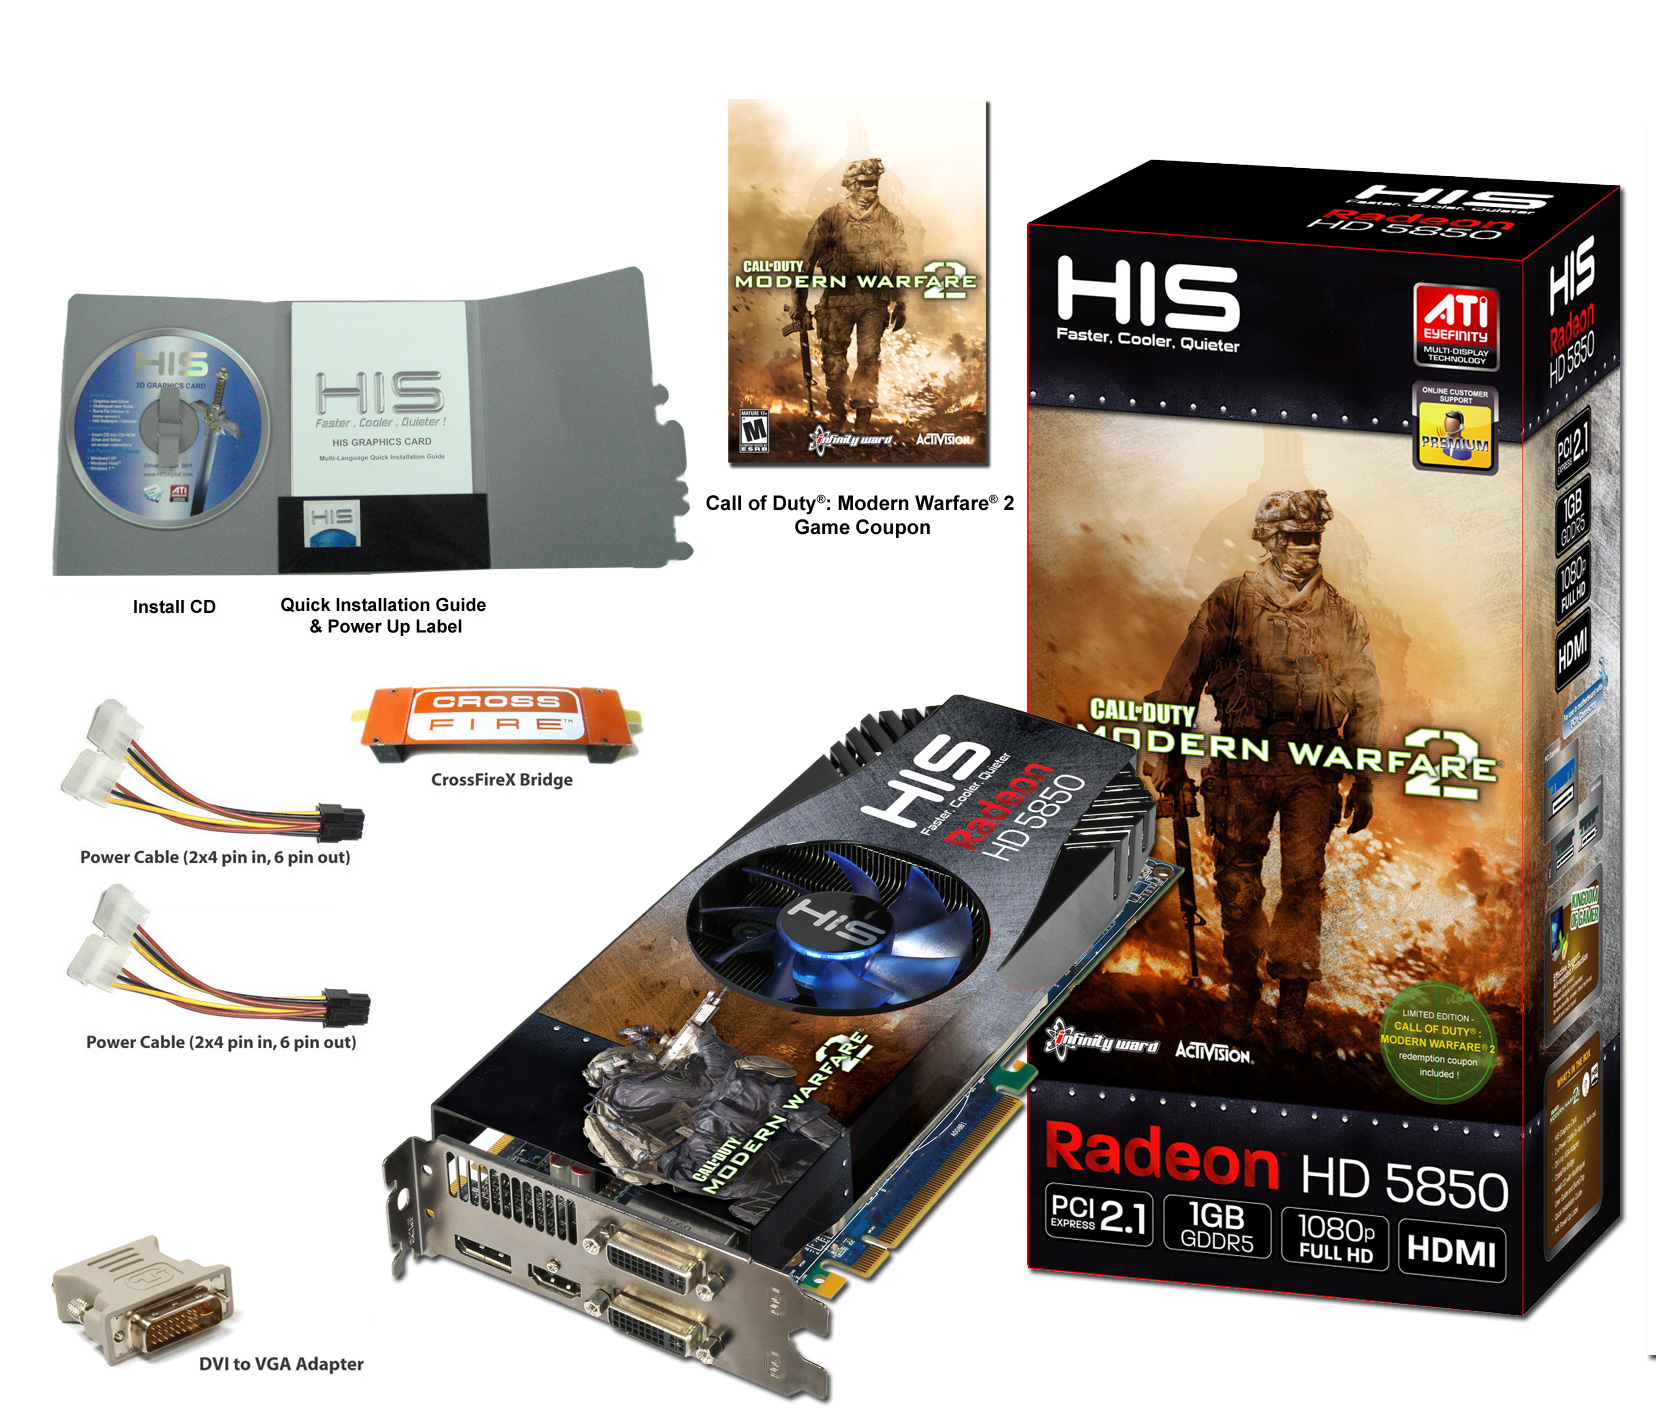 HIS HD 5850 iCooler V 1GB (256bit) GDDR5 PCIe (DirectX 11